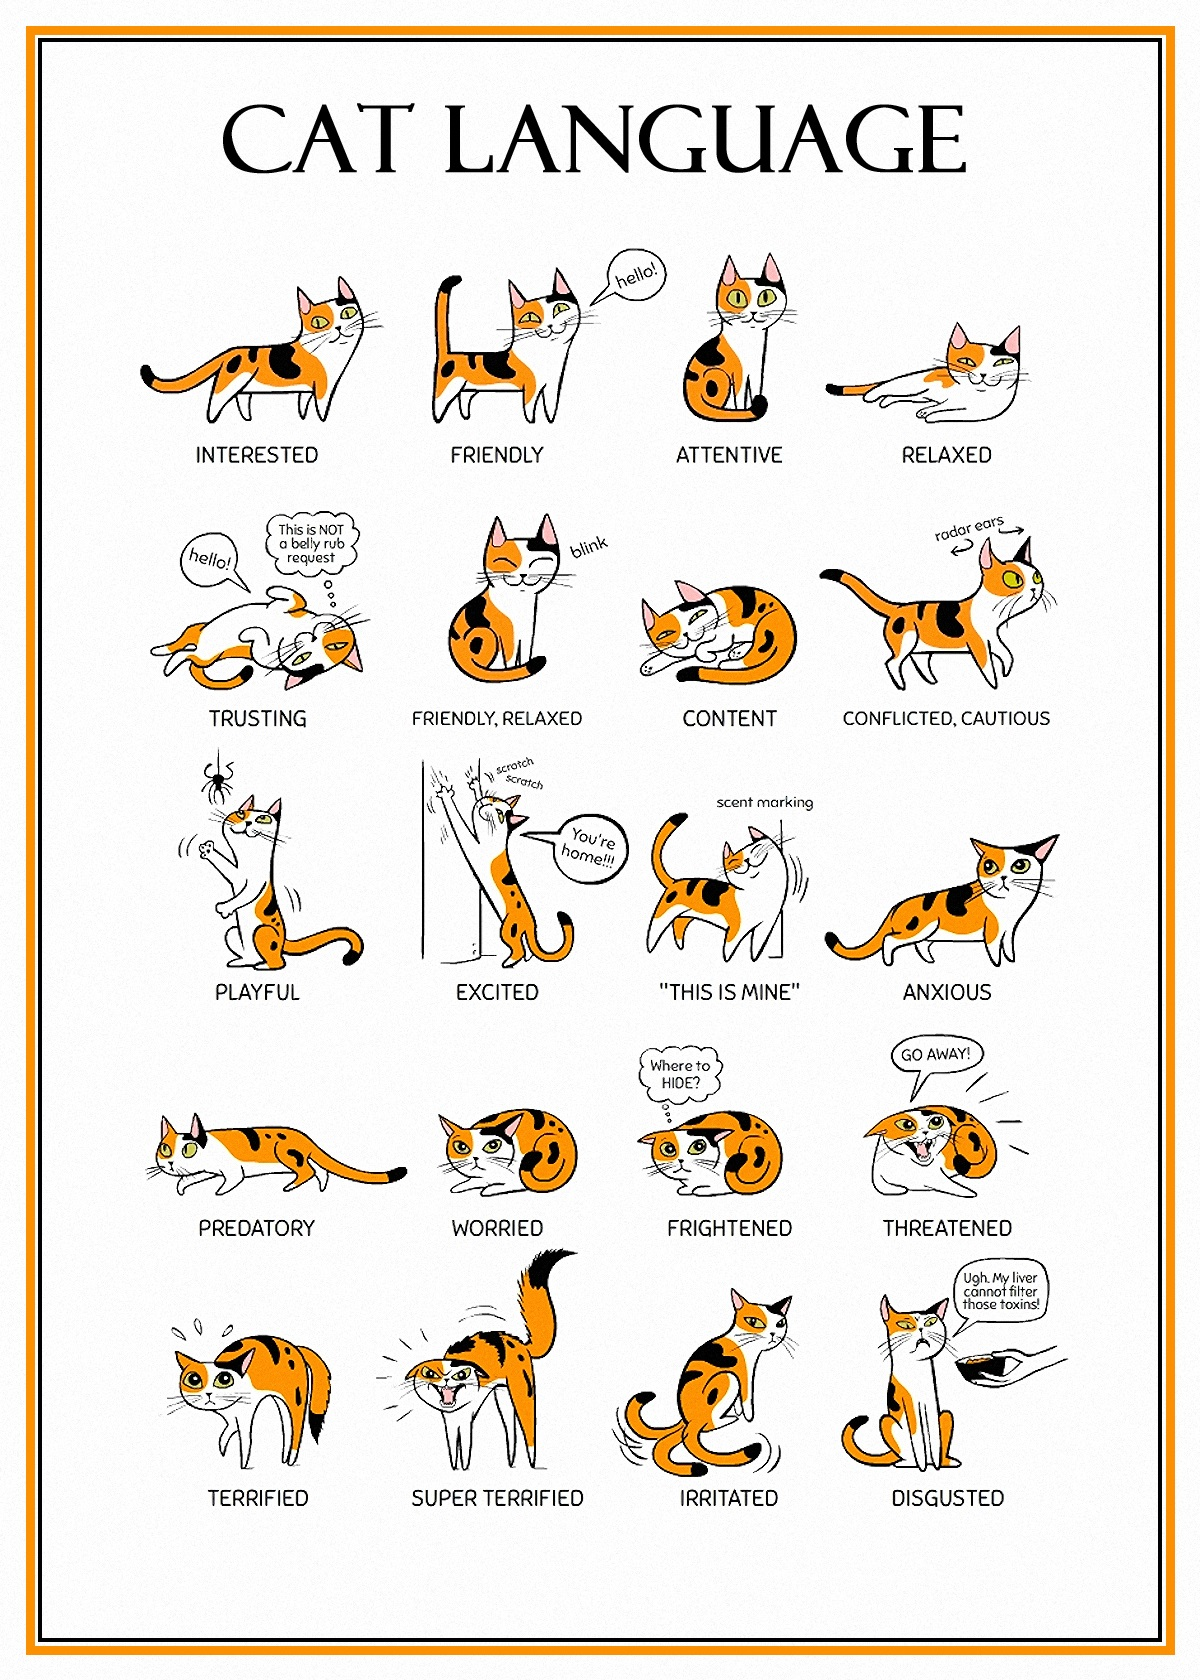 00 cat language 210516